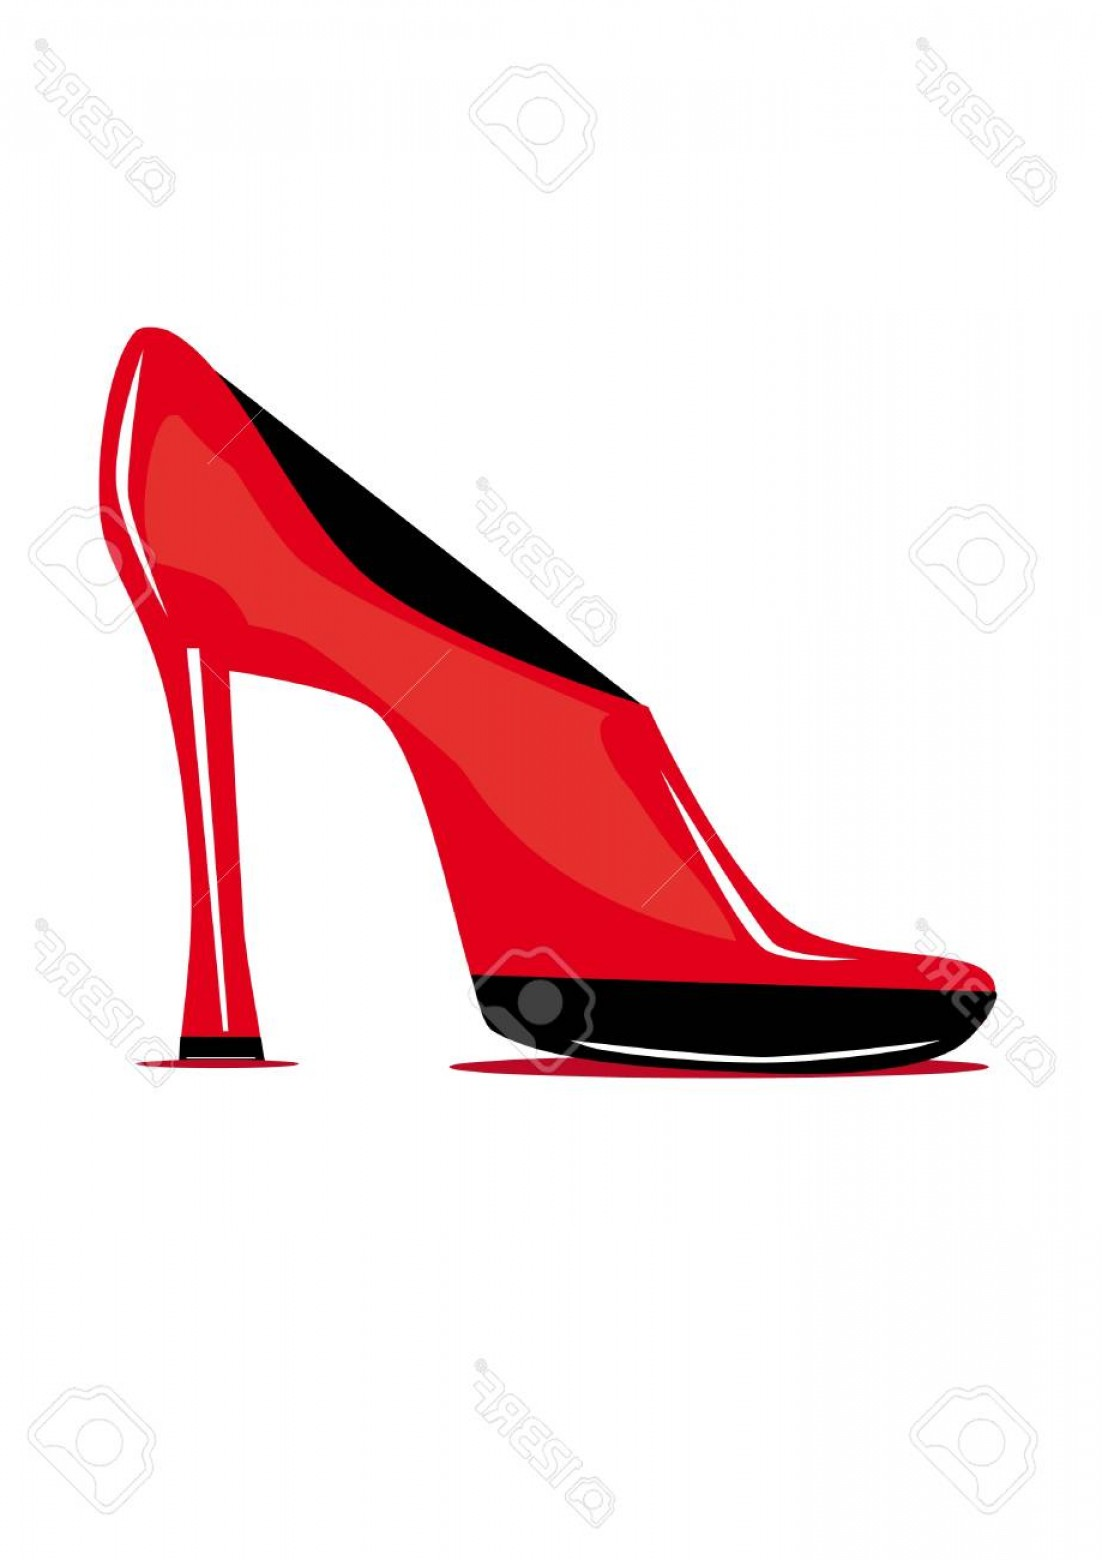 Ruby Red Slippers Vector Art: Photored Shoe On The Isolated Background Illustration